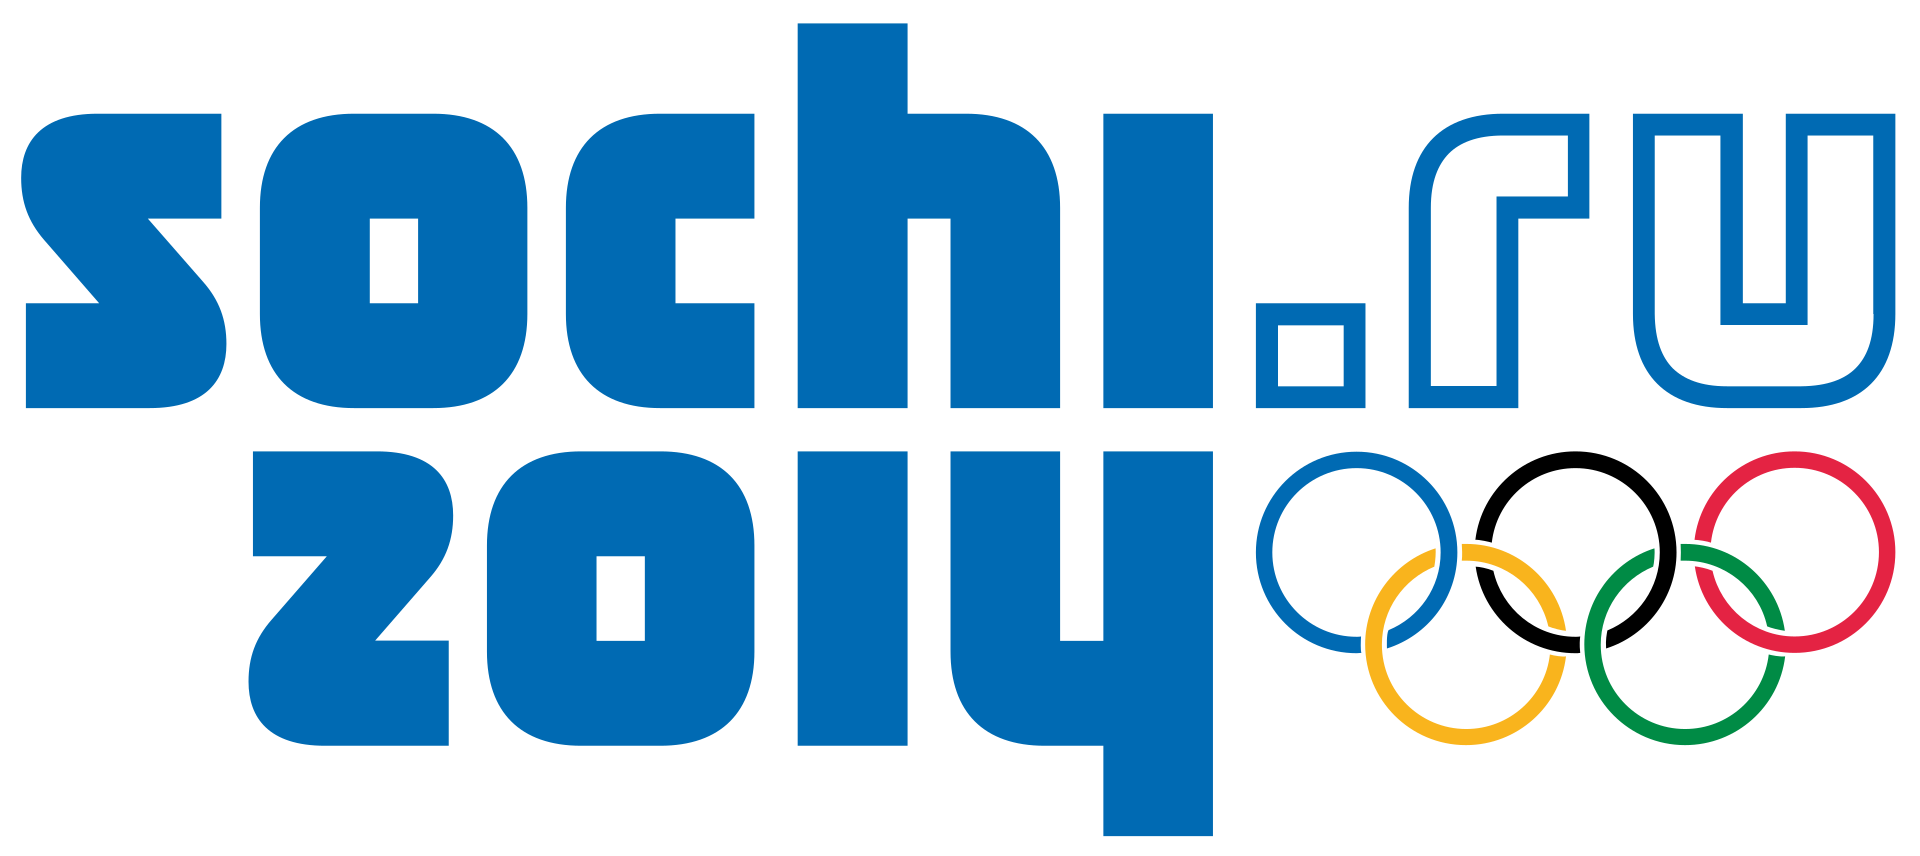 The XXII Olympic Winter Games are held in Sochi, Russia. Slopestyle events are introduced for the first time.